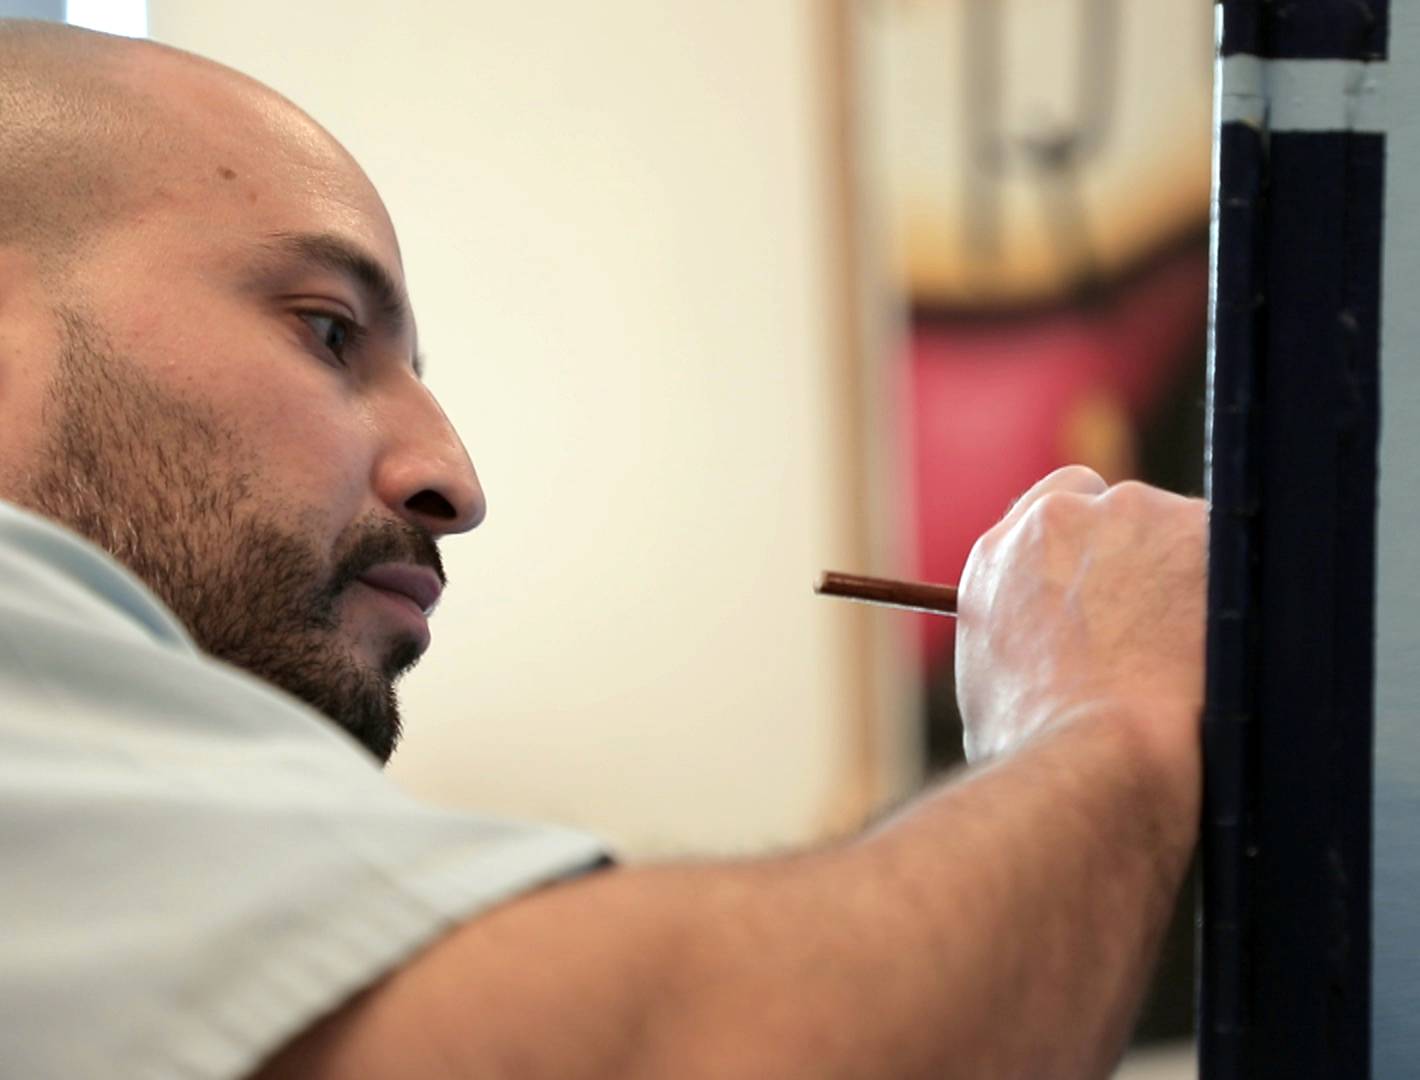 An inmate at Kewanee Life Skills Re-Entry Center paints in the art studio on March 13, 2018. (WBEZ/Andrew Gill)